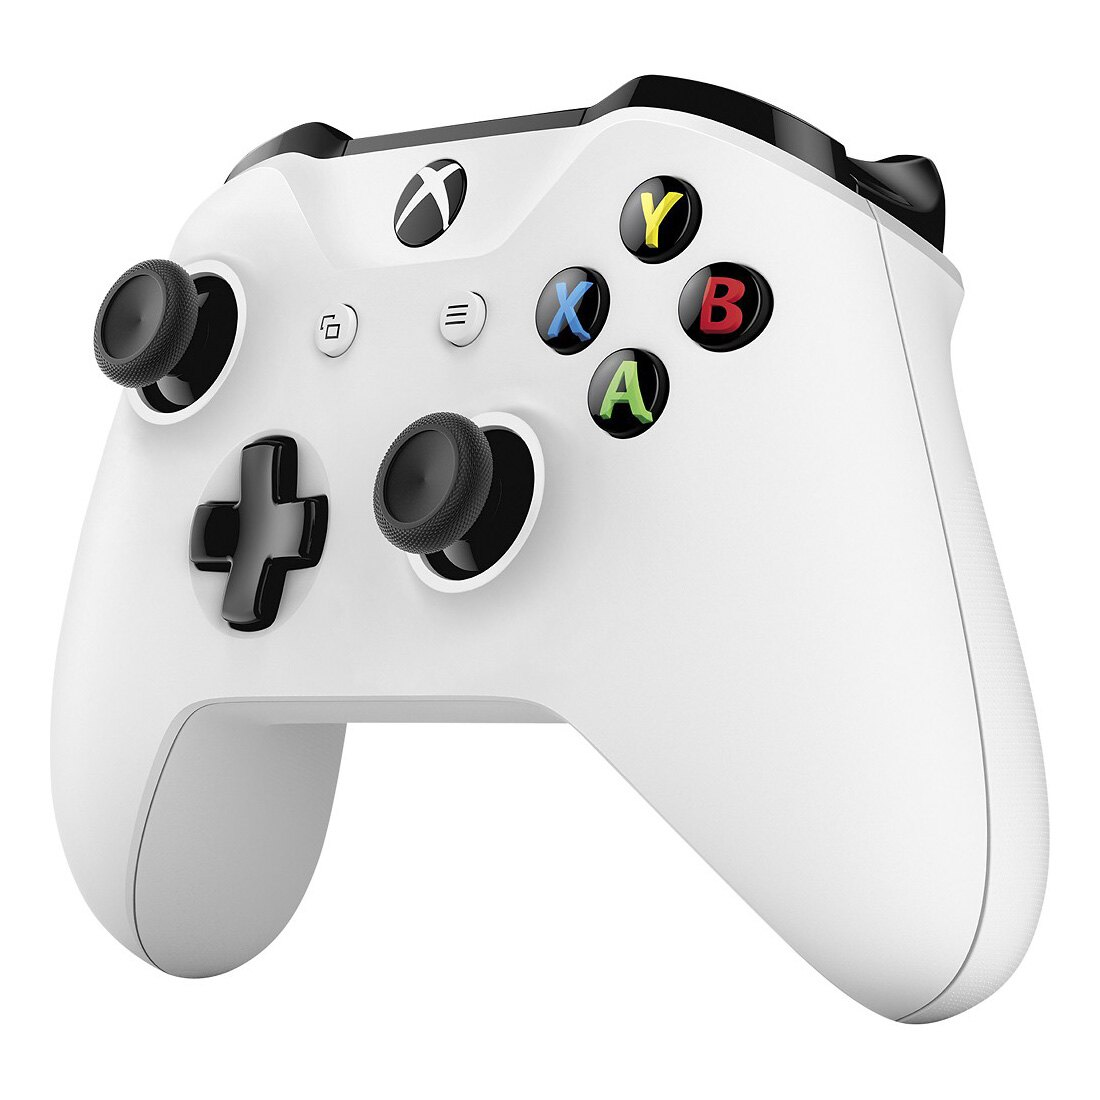 Sng Trading 2 Pack Xbox One S Wireless Microsoft Controller Glacier Stik Ps4 New Model White With Bluetooth 1